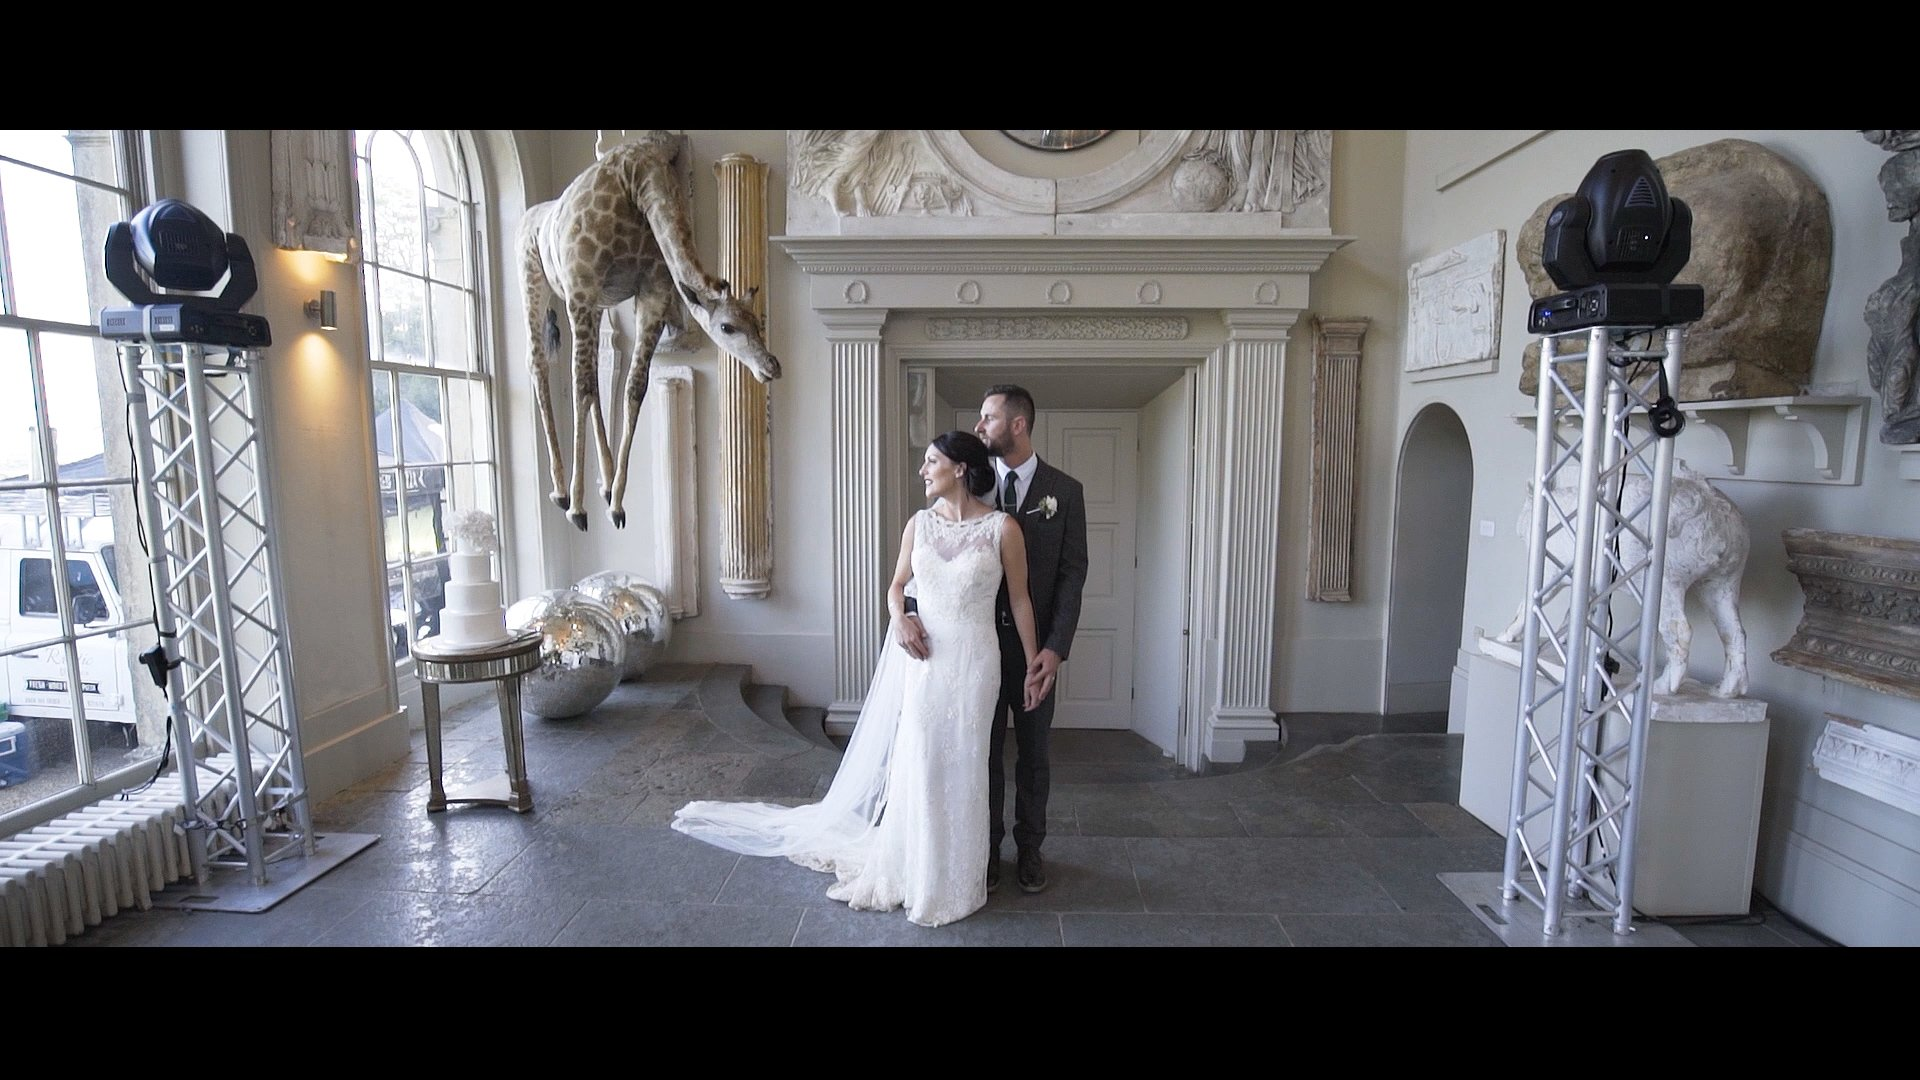 cinematic wedding video by best wedding videographer in London